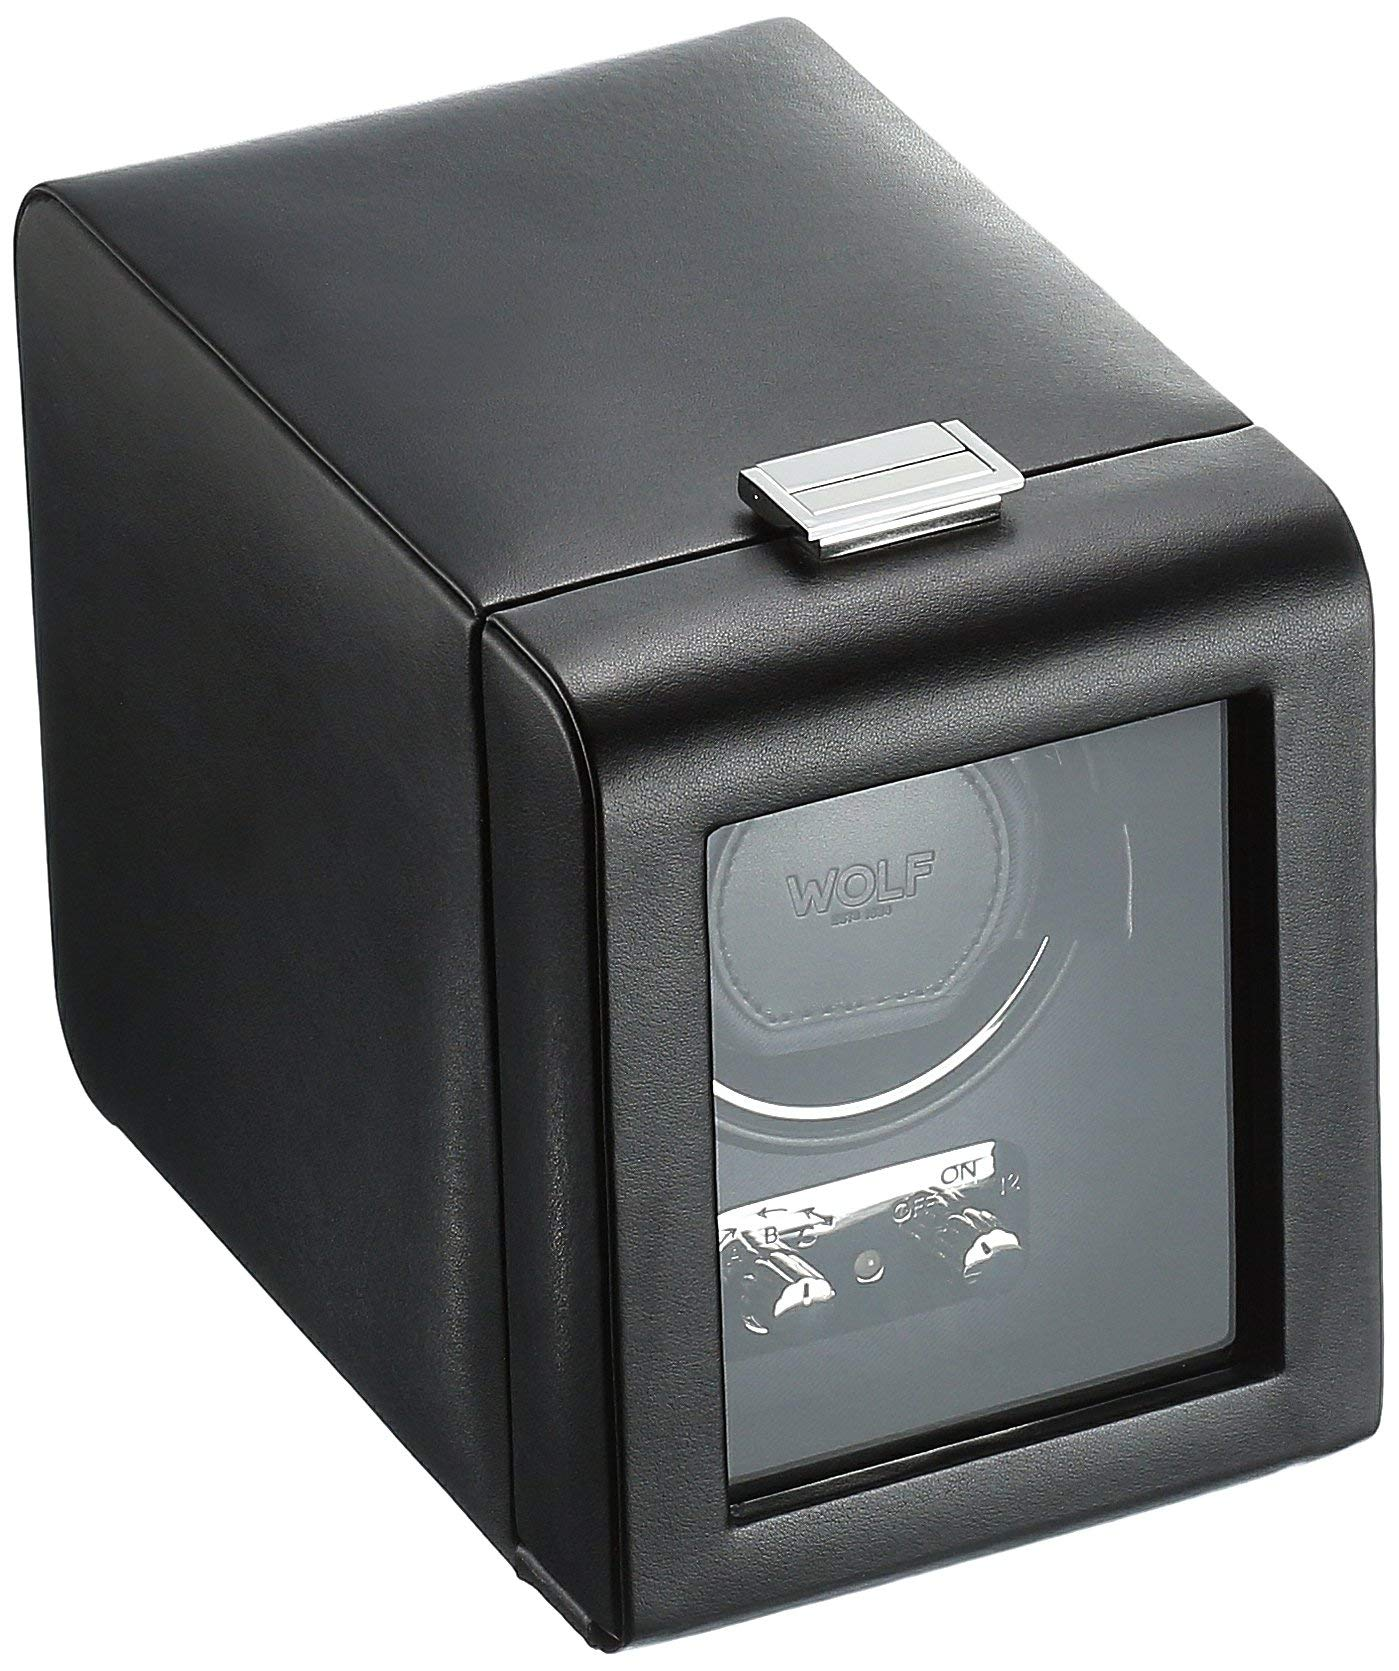 WOLF 270002 Heritage Single Watch Winder with Cover, Black by WOLF (Image #1)